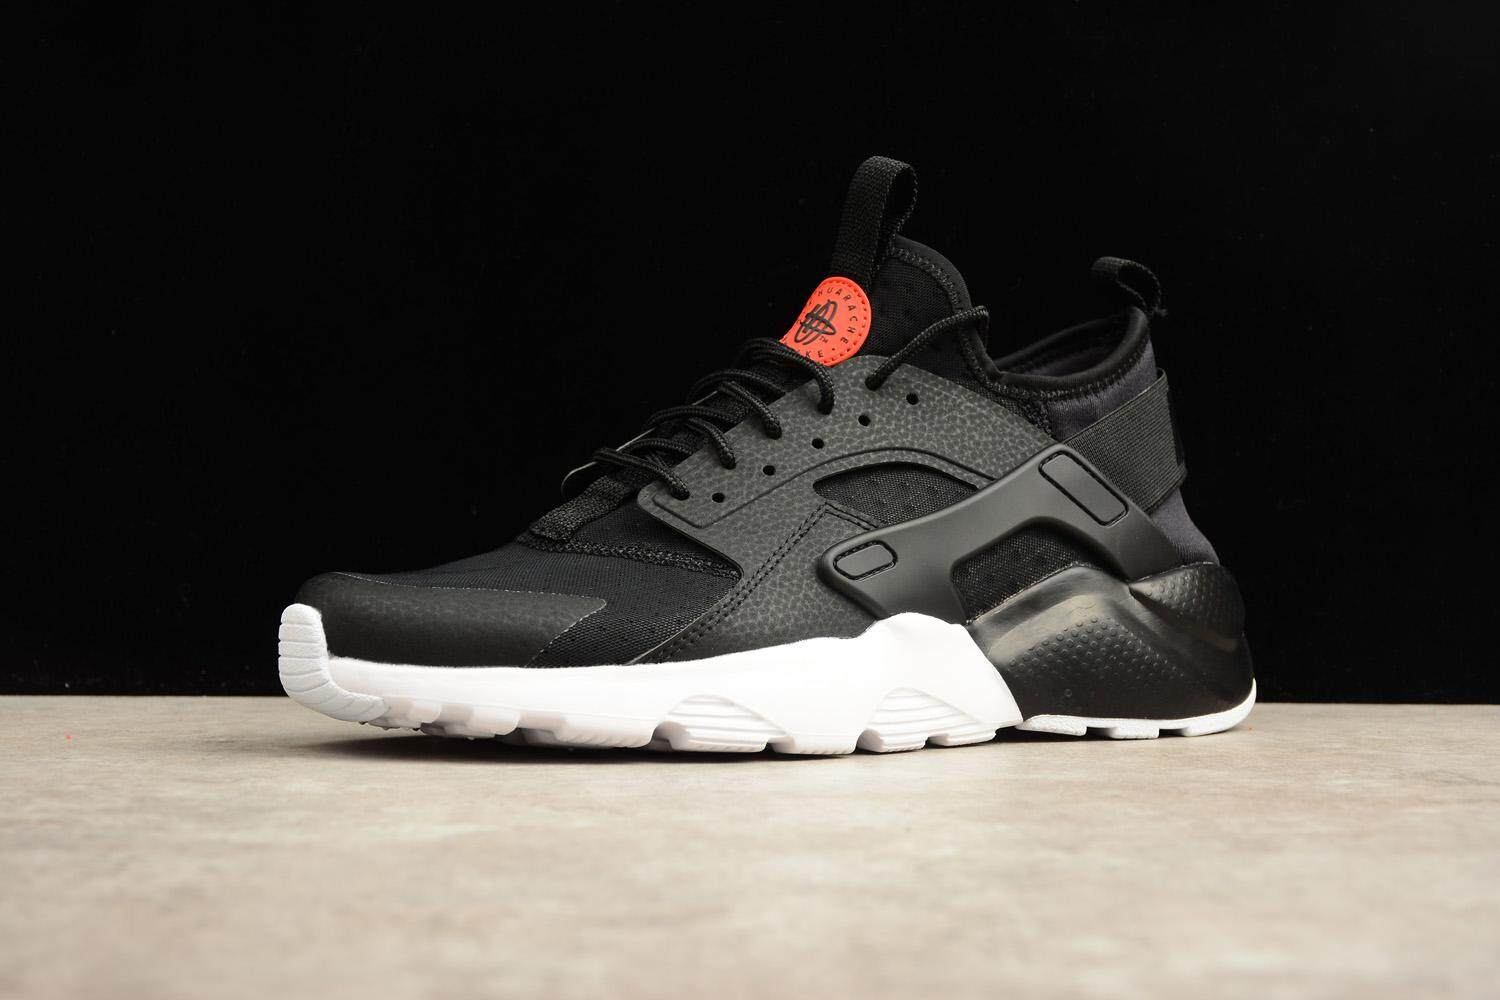 ed3ee98e84c Nike Sports   Outdoors - Shoes   Clothing price in Malaysia - Best ...